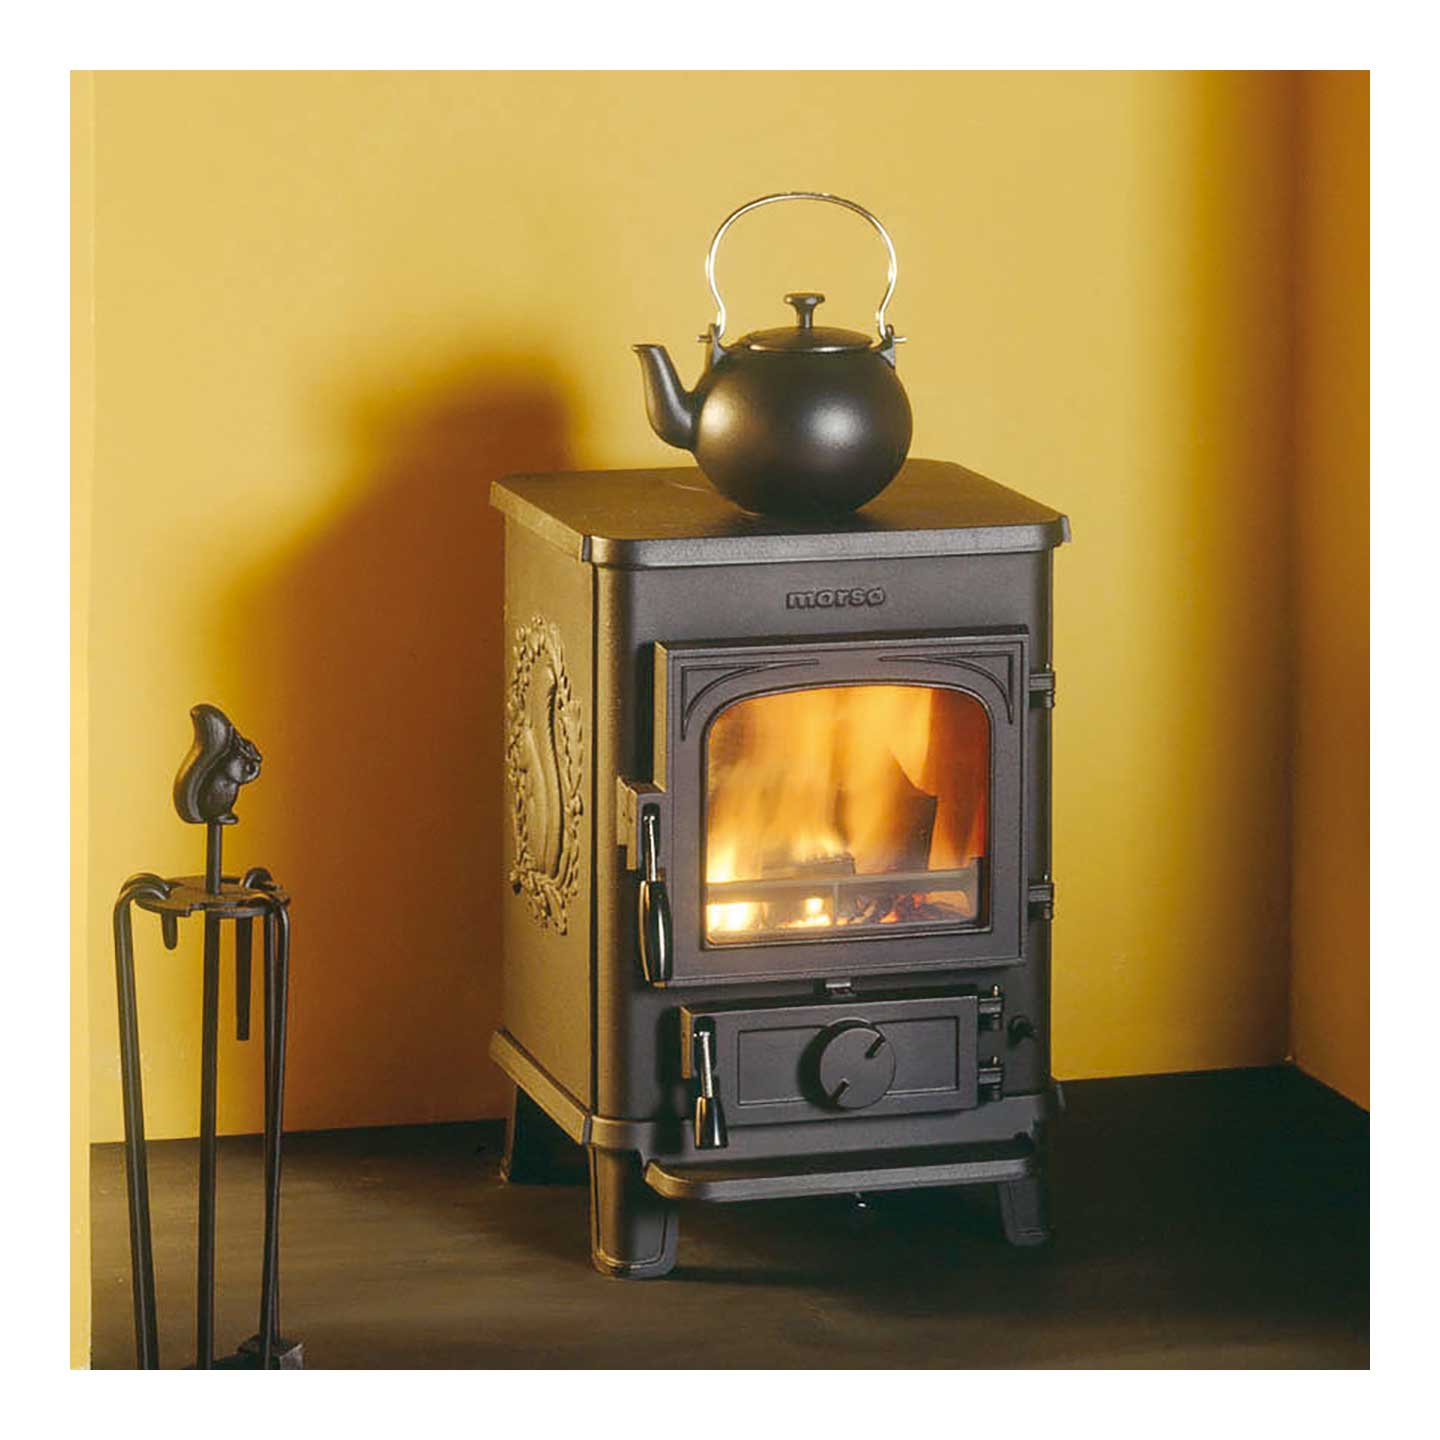 morso 1430 1435 cleanheat squirrel multi fuel stove the stove site approved dealers. Black Bedroom Furniture Sets. Home Design Ideas